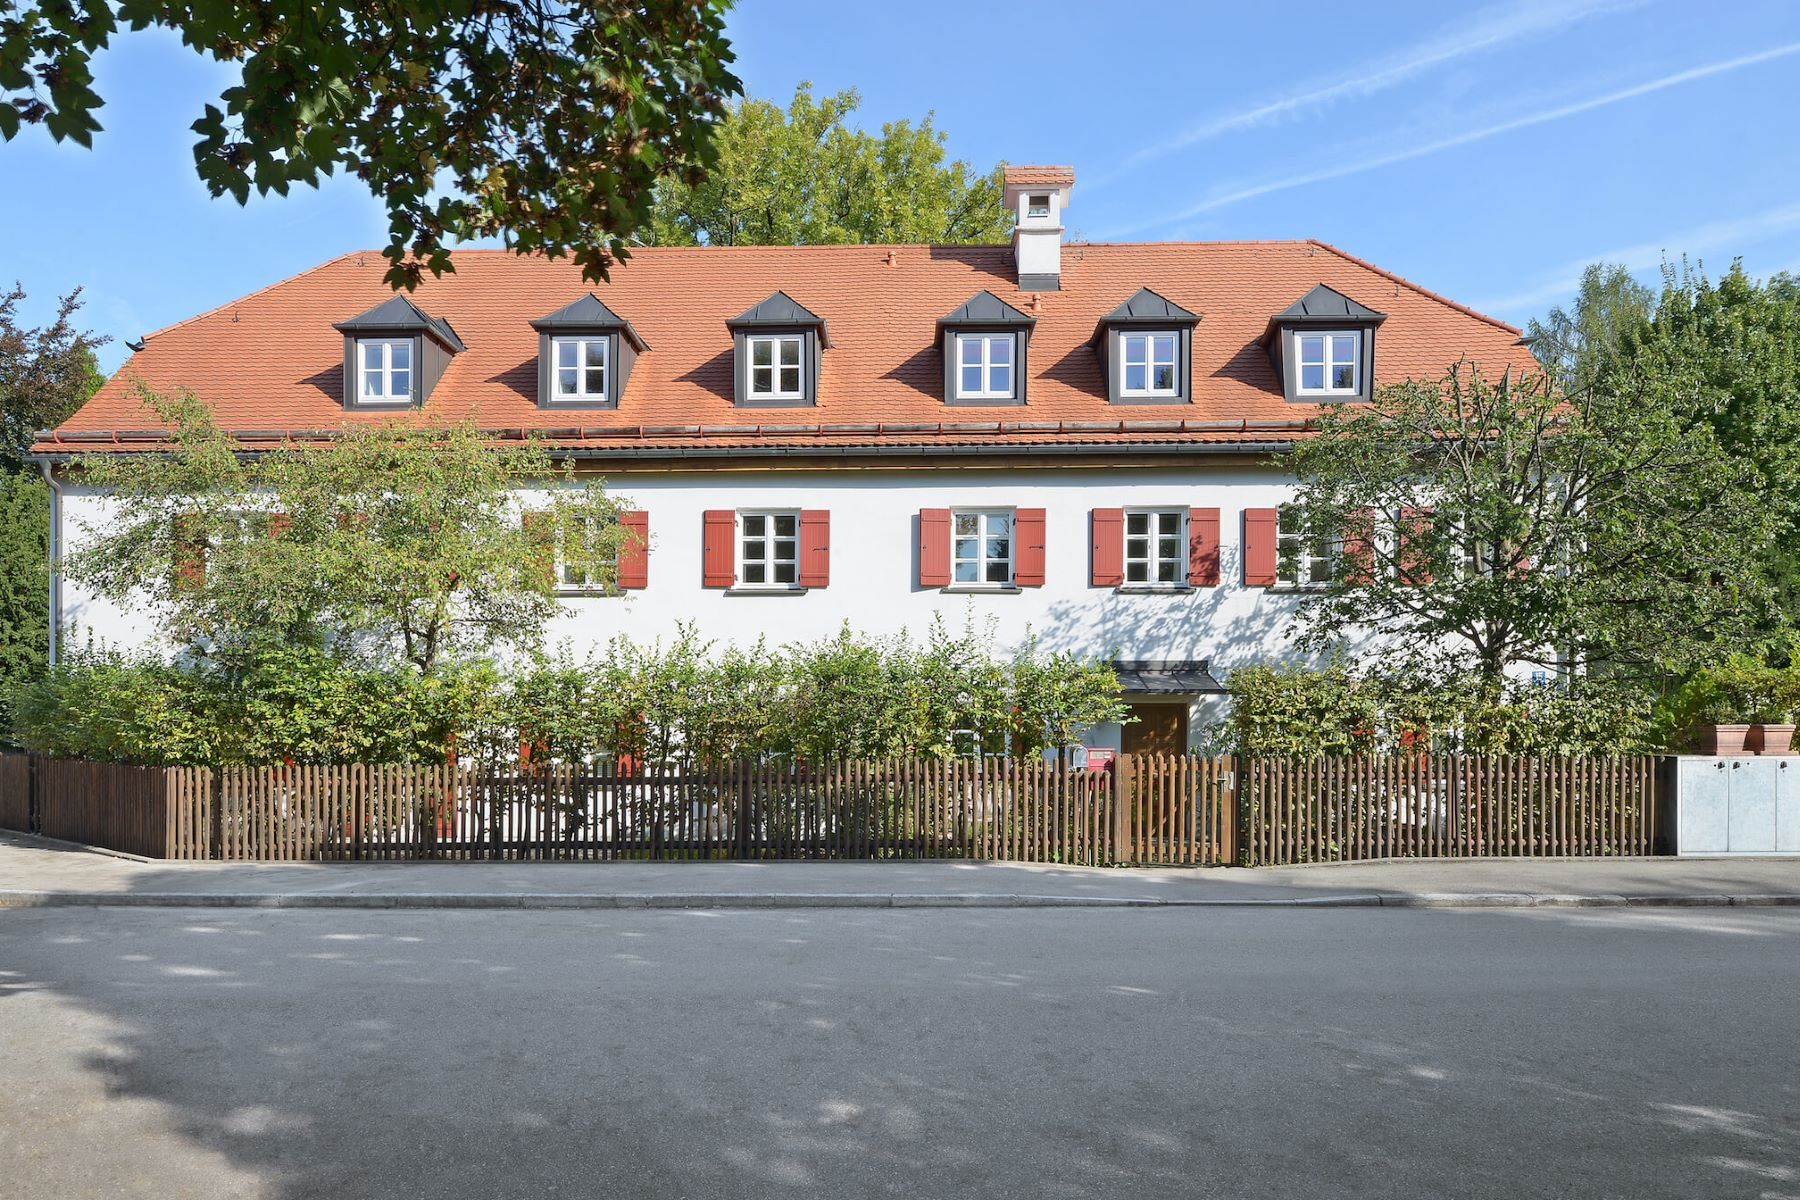 Single Family Home for Sale at Historic Semi-Detached House With Underground Parking Munich, Bavaria 81479 Germany